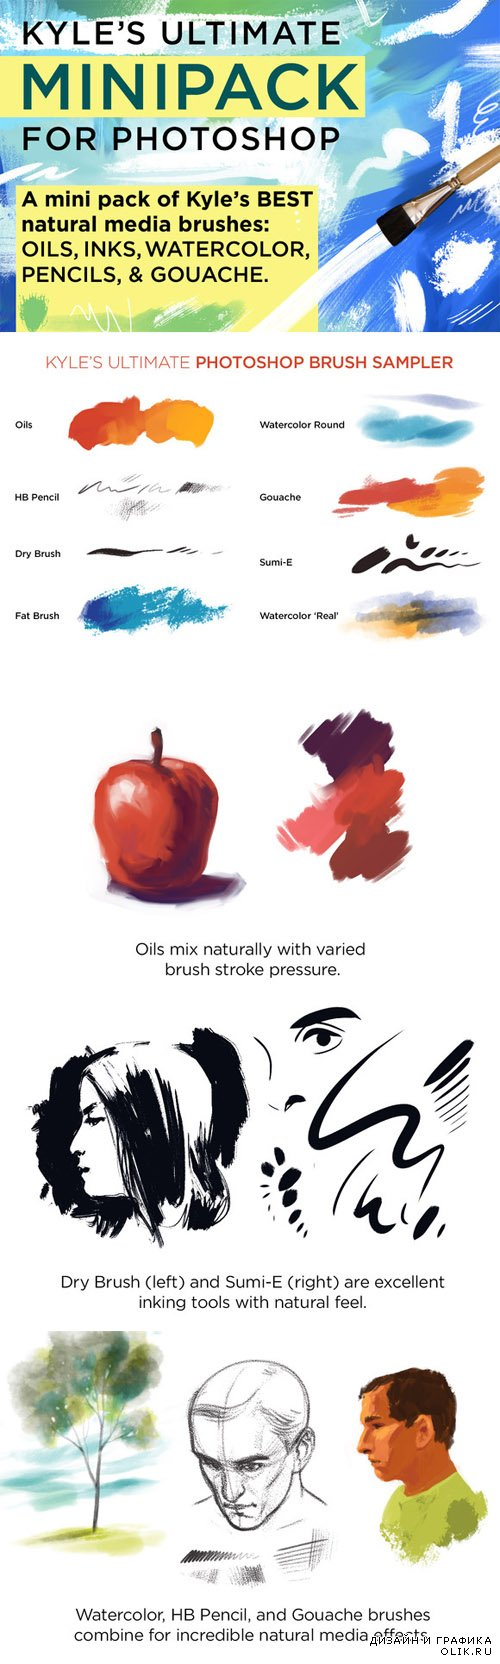 CreativeMarket - Kyle's Photoshop Brush Mini Pack 19411